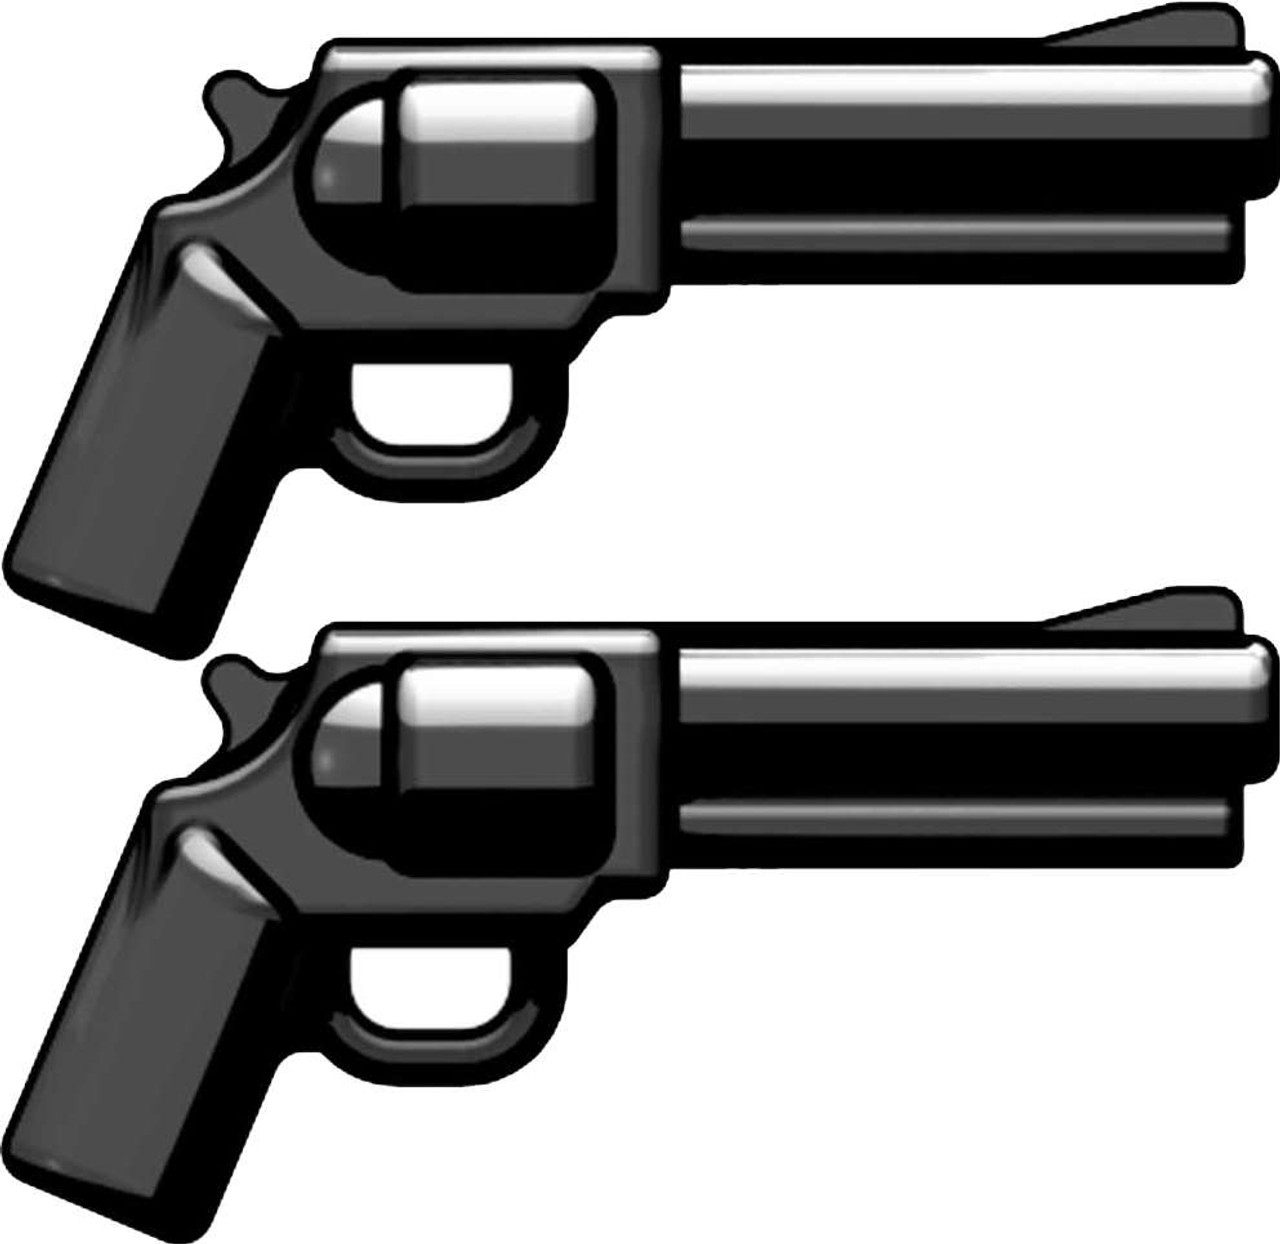 BrickArms Weapons Set of 2 SW500 Magnum Revolvers 2.5-Inch [Black]